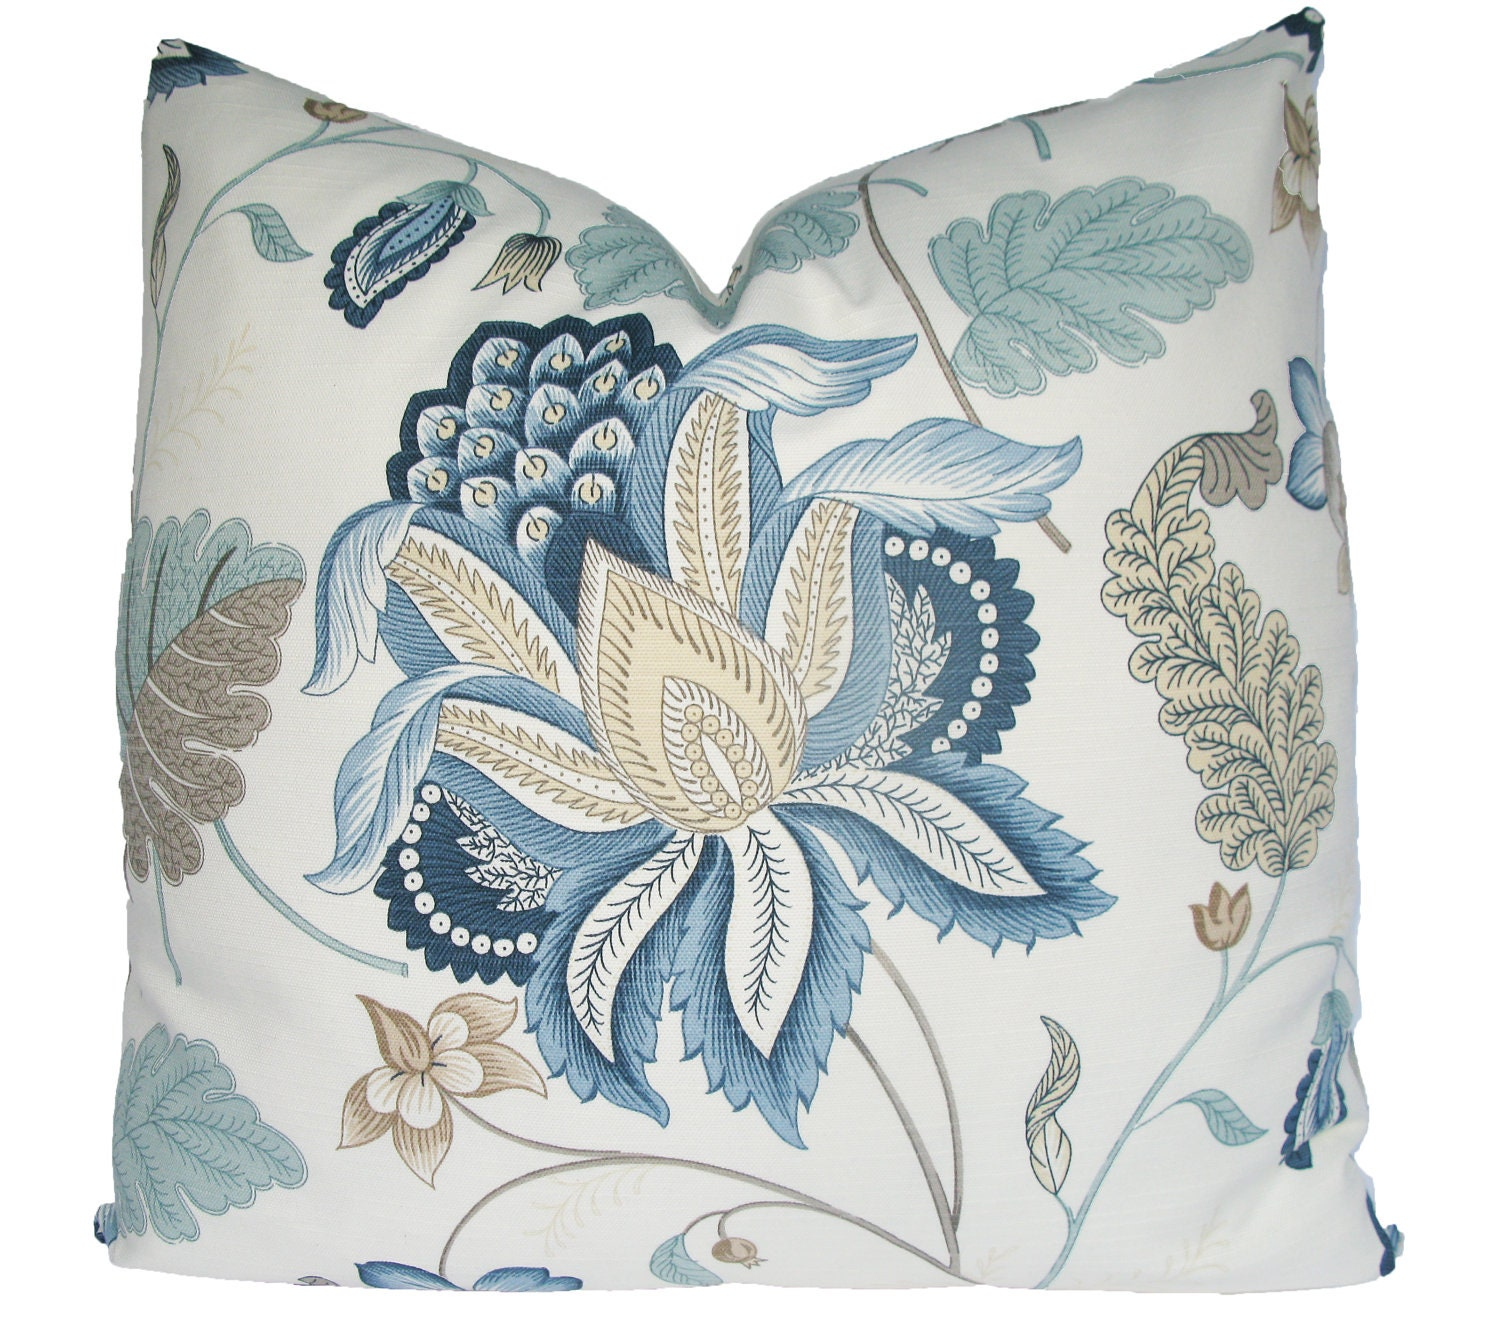 Jacobean Decorative Pillows : Decorative Jacobean Floral Pillow Cover Aqua Teal Taupe